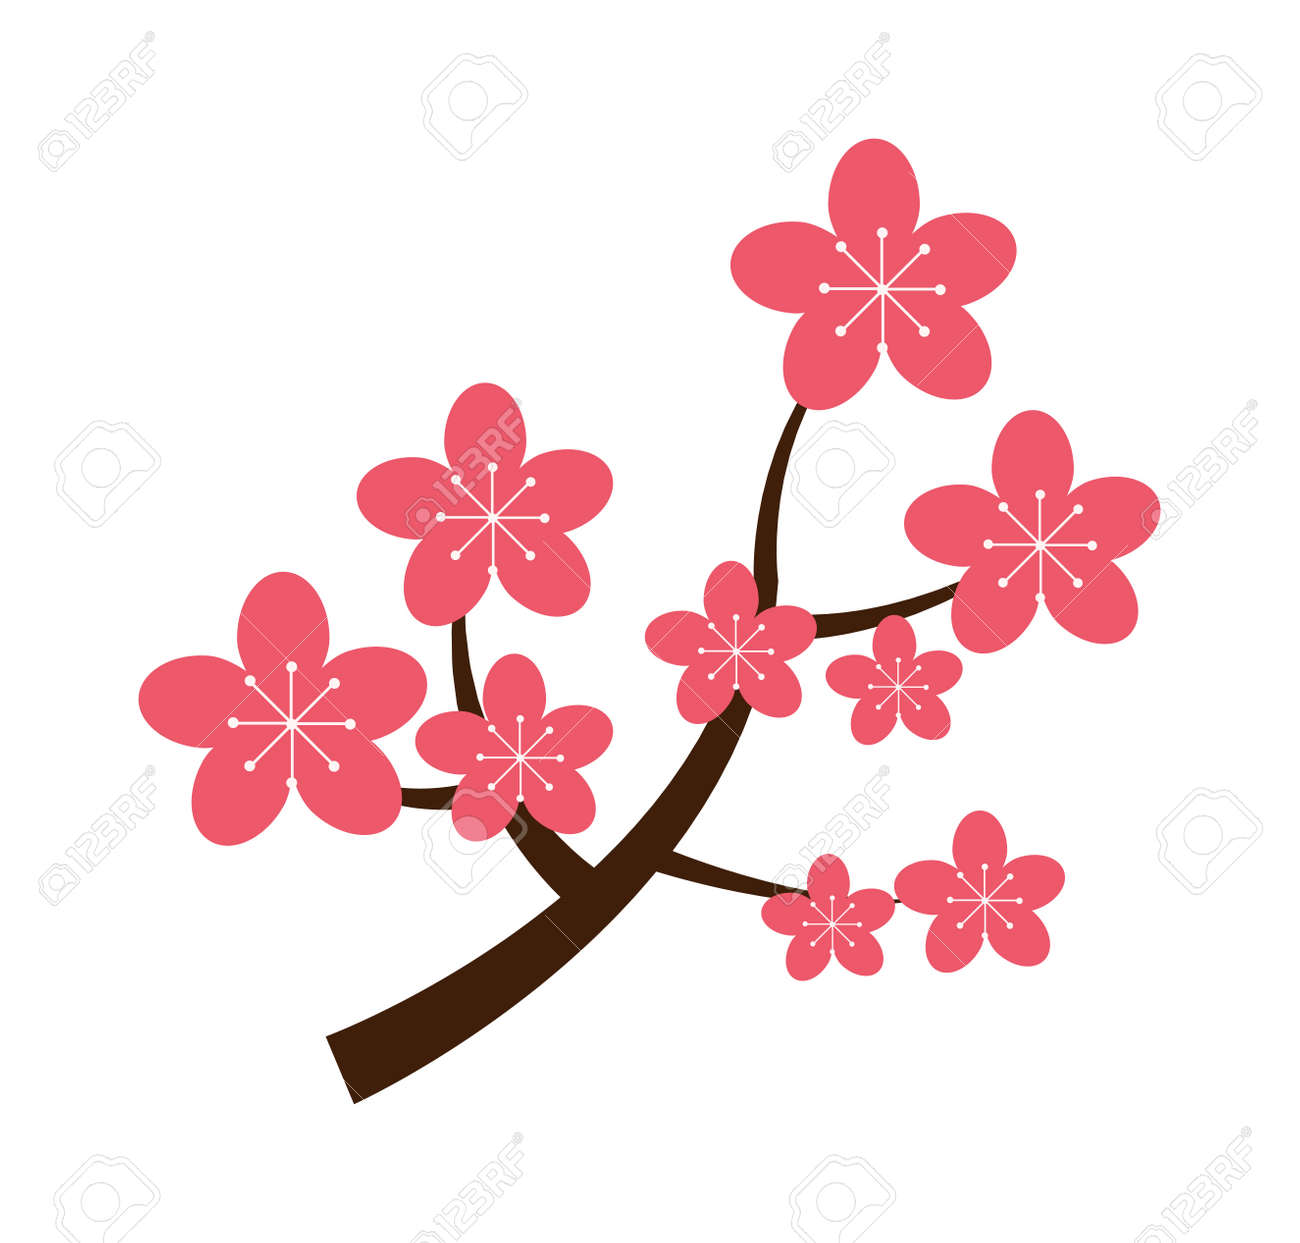 Realistic Sakura Japan Cherry Branch With Blooming Flowers Vector